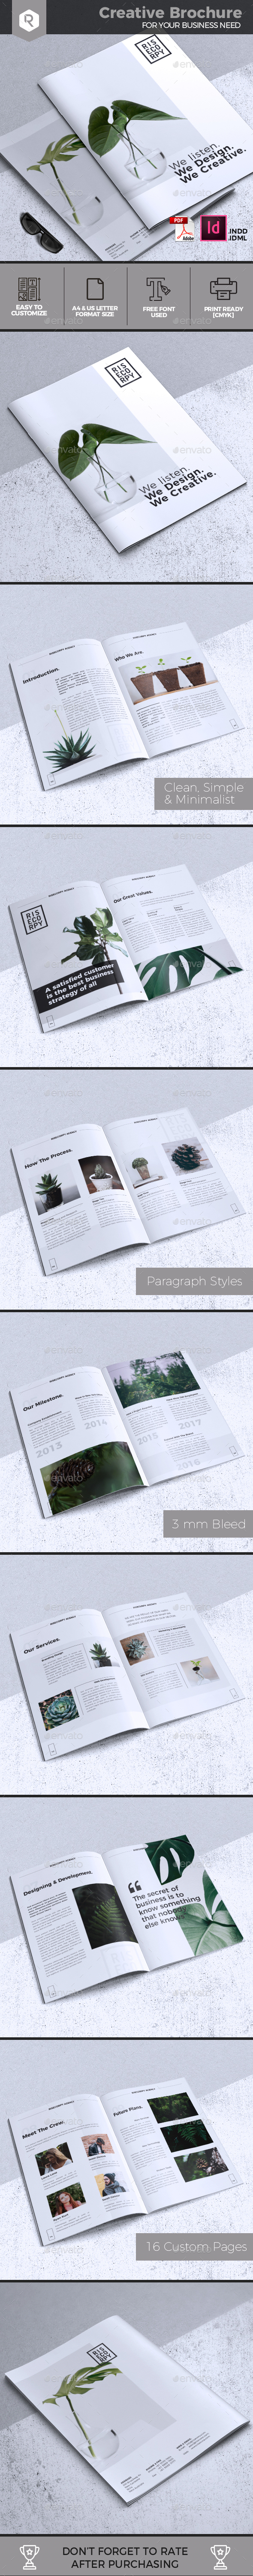 Creative Brochure Template Vol. 31 - Corporate Brochures